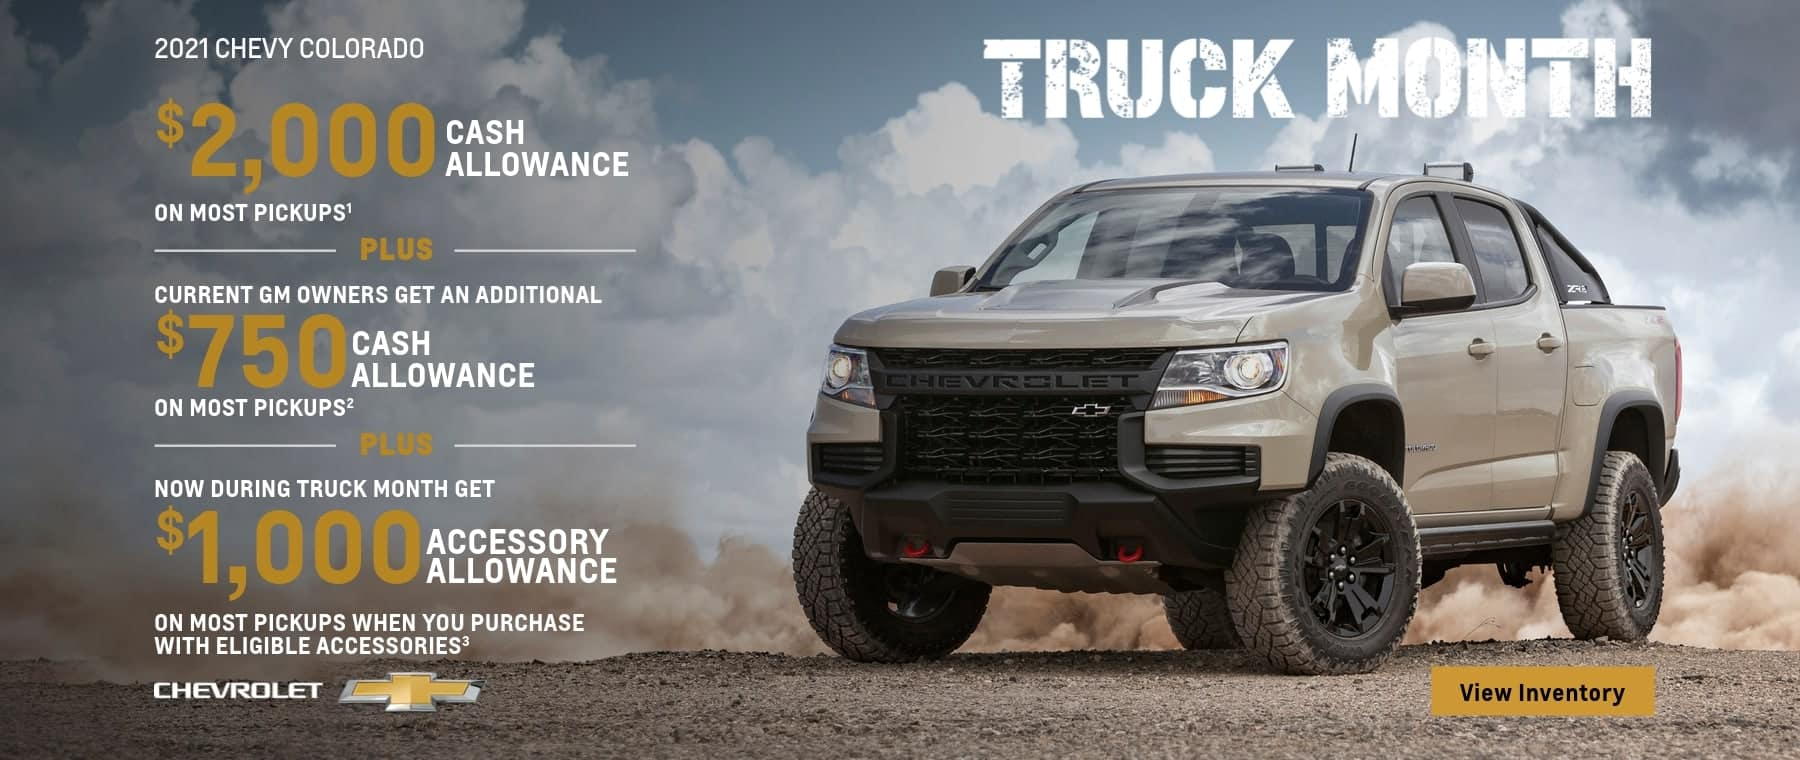 $3,000 cash allowance on most pickups plus current GM owners get an additional $750 cash allowance on most pickups plus now during Truck Month get $1,000 accessory allowance on most pickups.